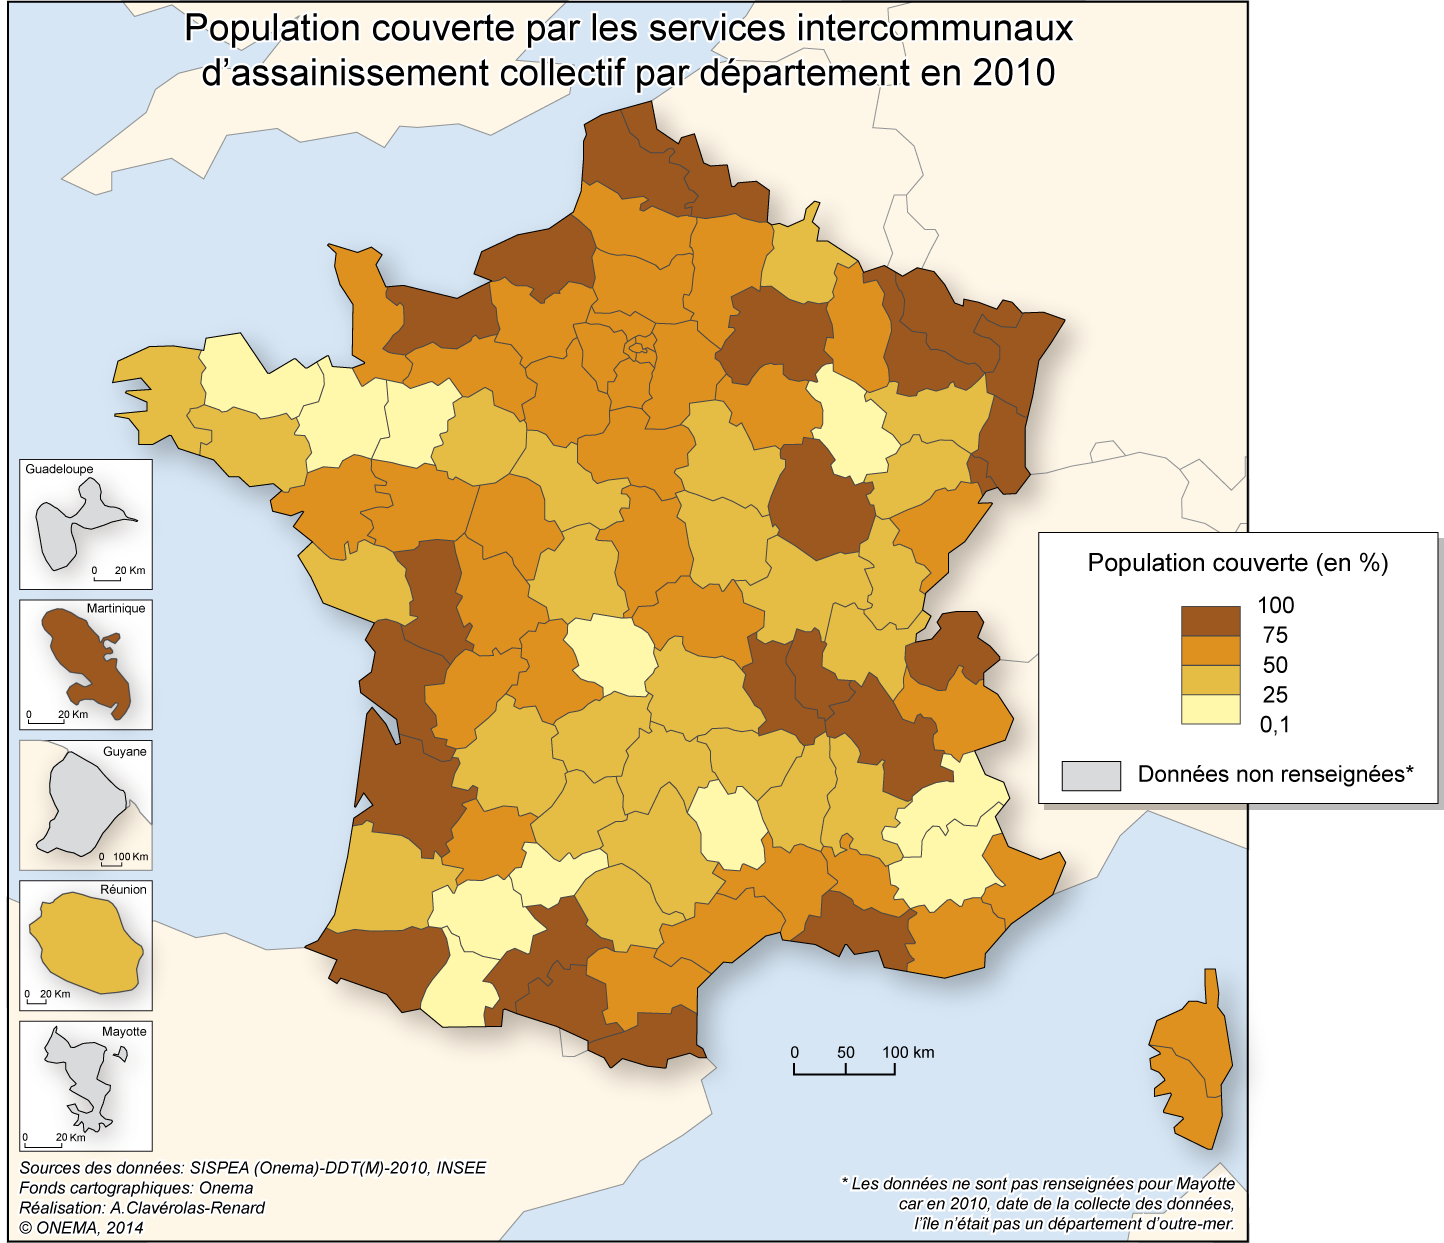 5)	Proportion de populations relevant d'un service intercommunal d'assainissement collectif en 2010